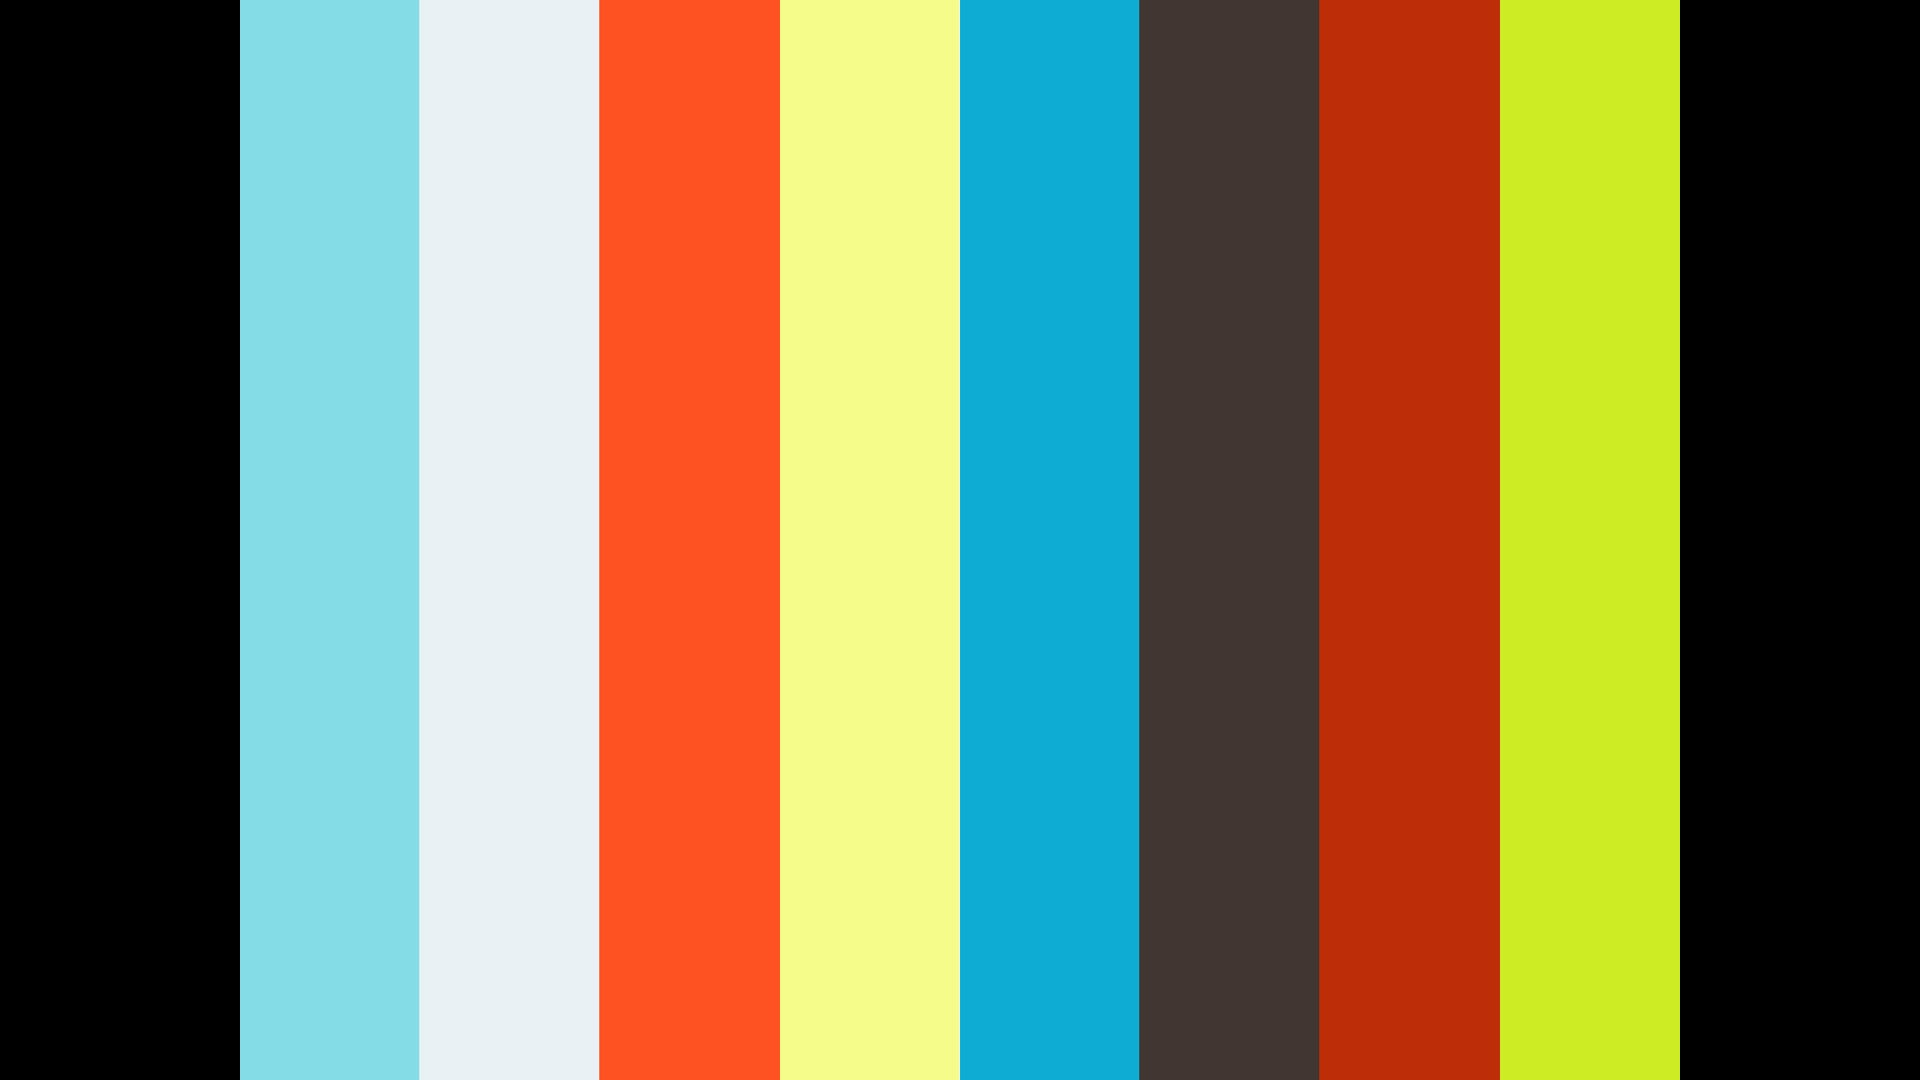 thiopianismtv # ንትርክ crosstalk Abiy Misseducational System የአቢይ አሰሳች የትምህርት ስርዓት 23